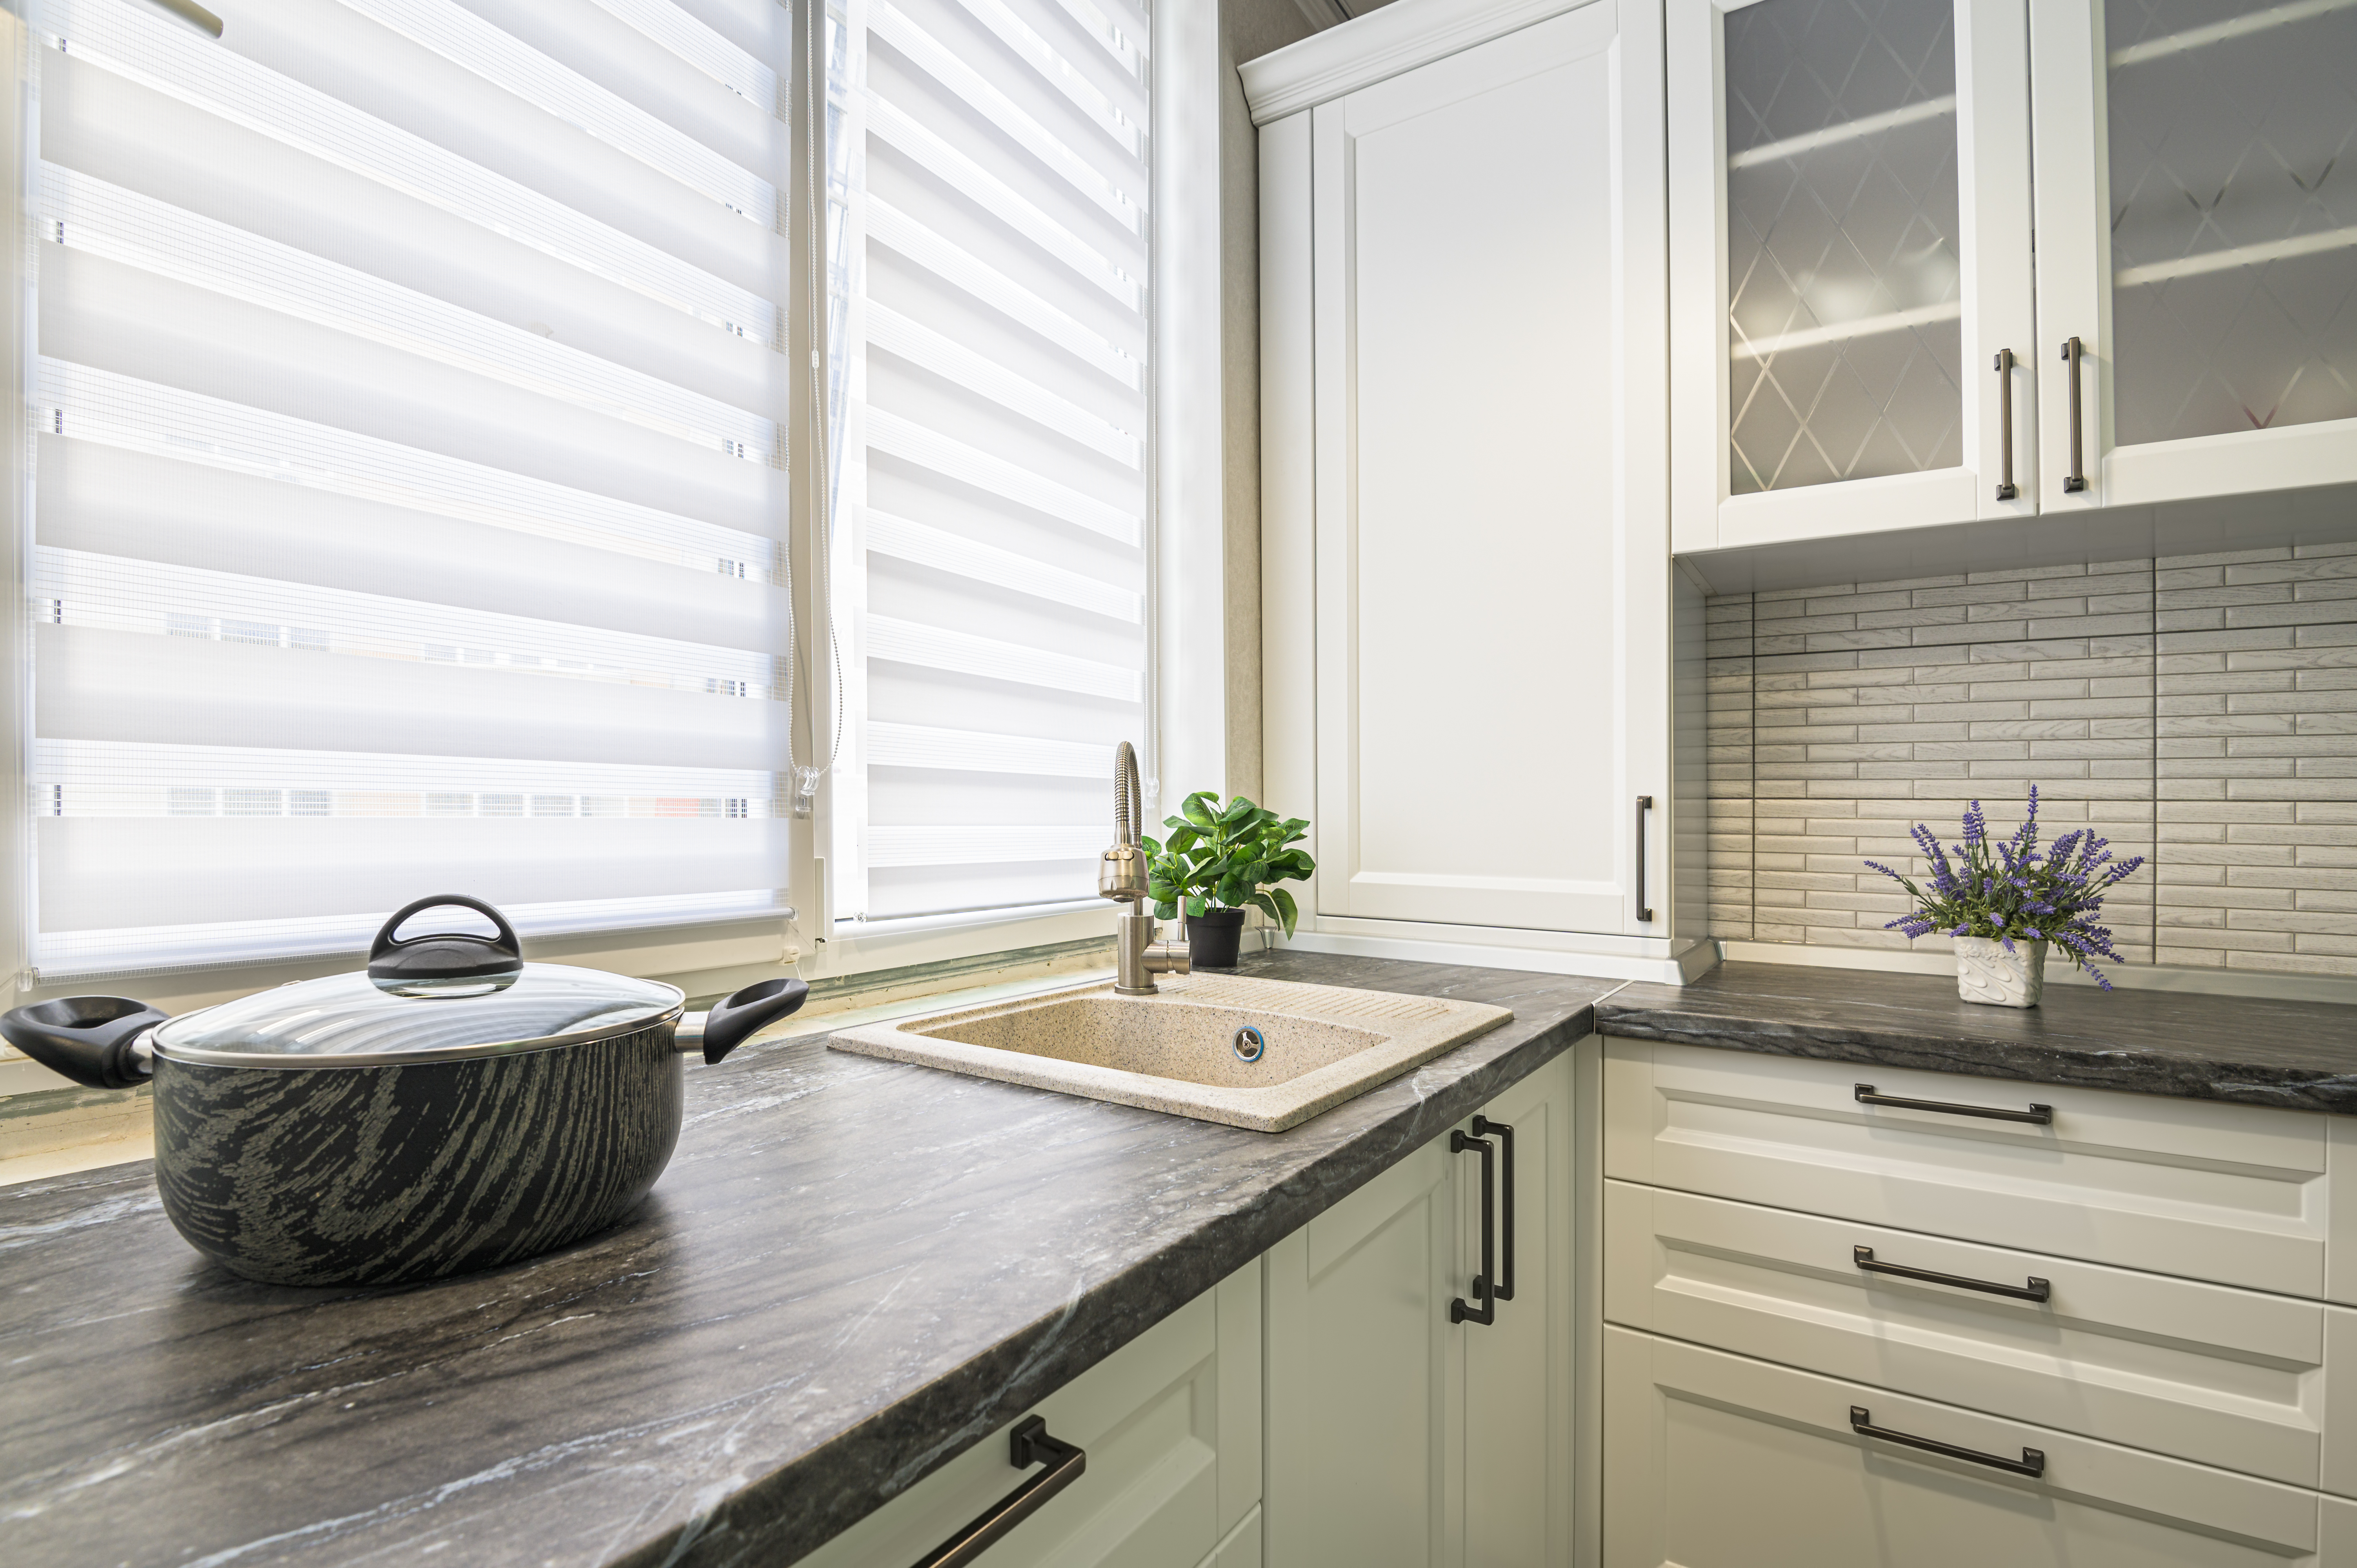 simple well designed modern white kitchen interior with bespoke window blinds